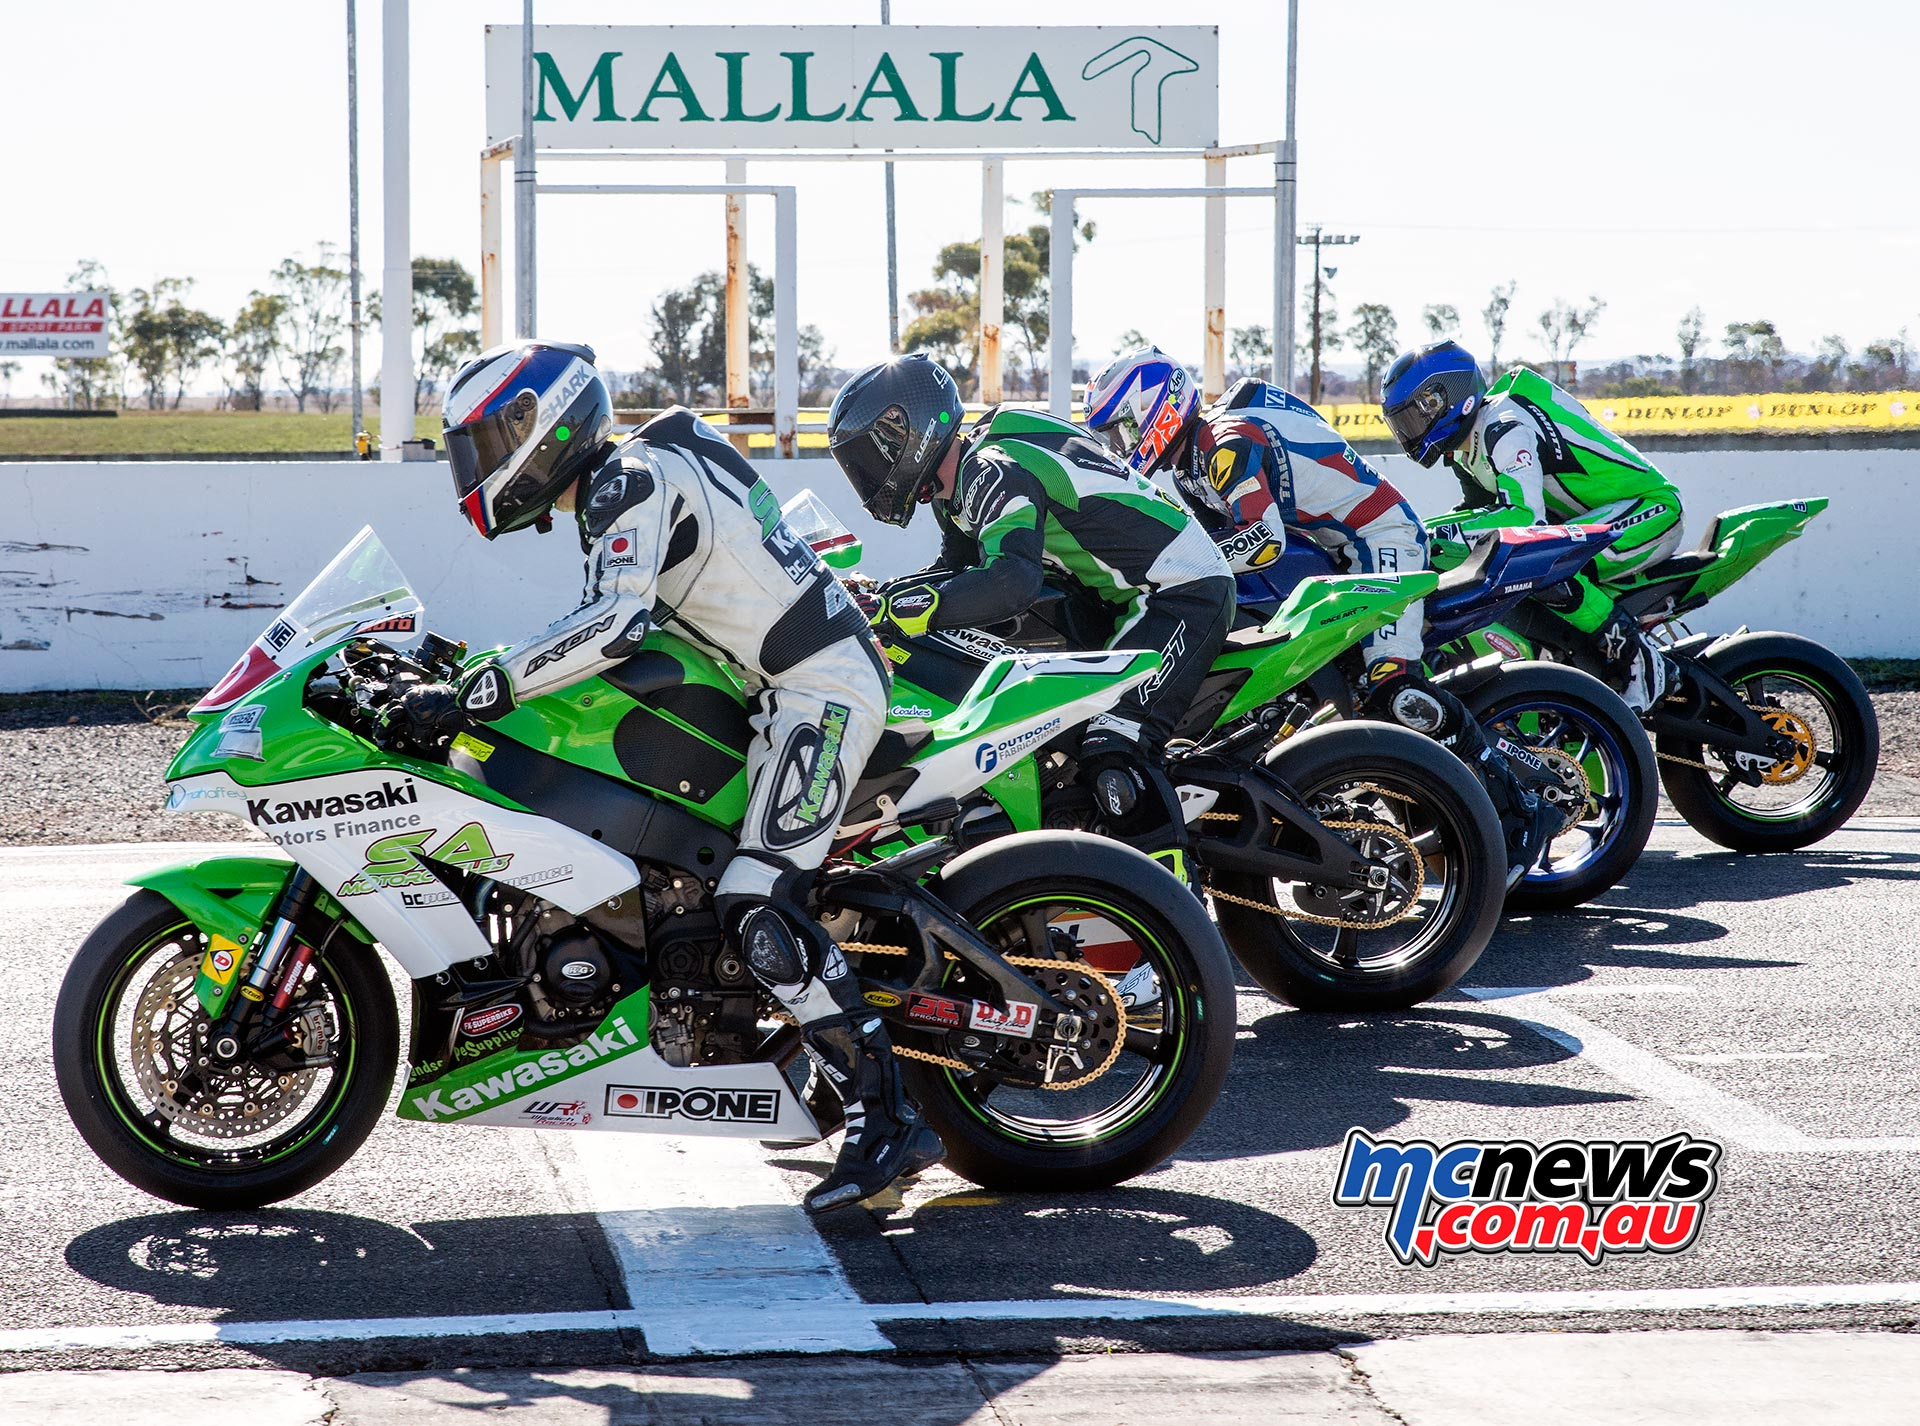 Swann Superbike Championship 2016 - Round Three - Mallala - Superbike Start